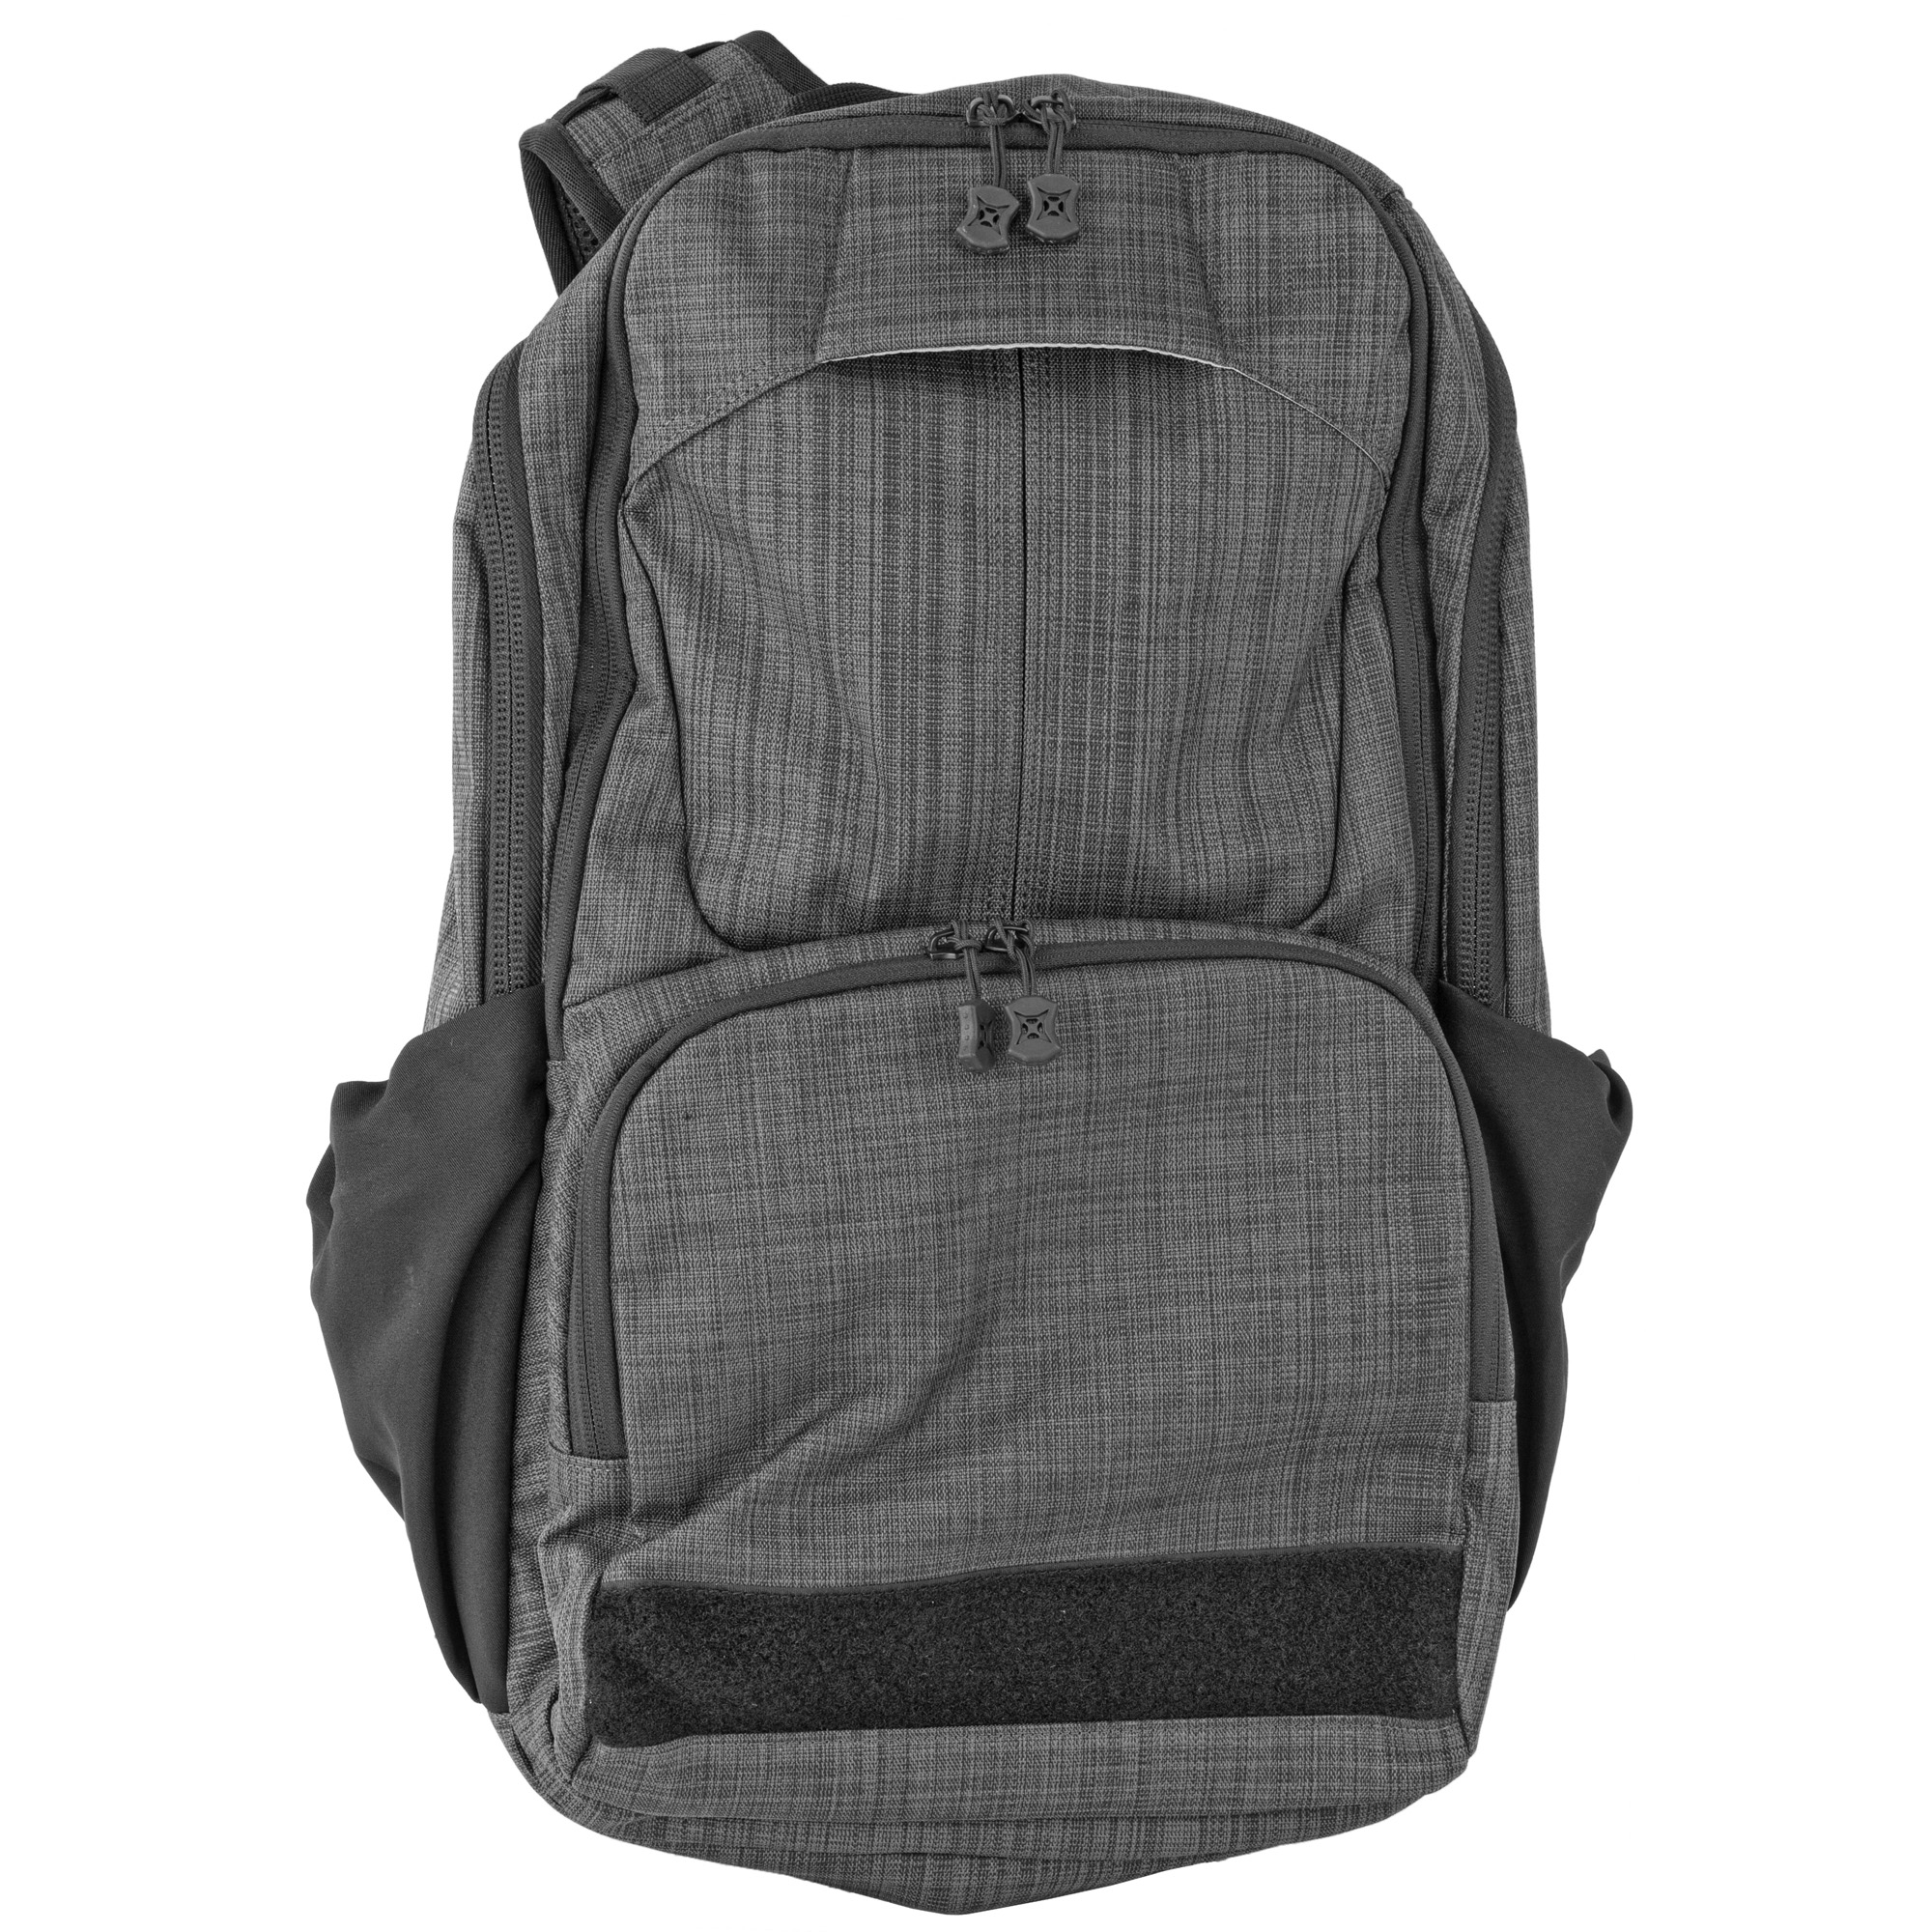 Keep your essential everyday gear organized and your CCW readily accessible in a Ready backpack that can change its appearance to keep you under the radar. Tuck the unassuming front flap away for a quick conversion to a different appearance and access to gear loaded on the concealed MOLLE panel. Plenty of slots and pockets and several VELCRO Brand loop panels keep smaller tools and admin materials securely stashed until you need them.